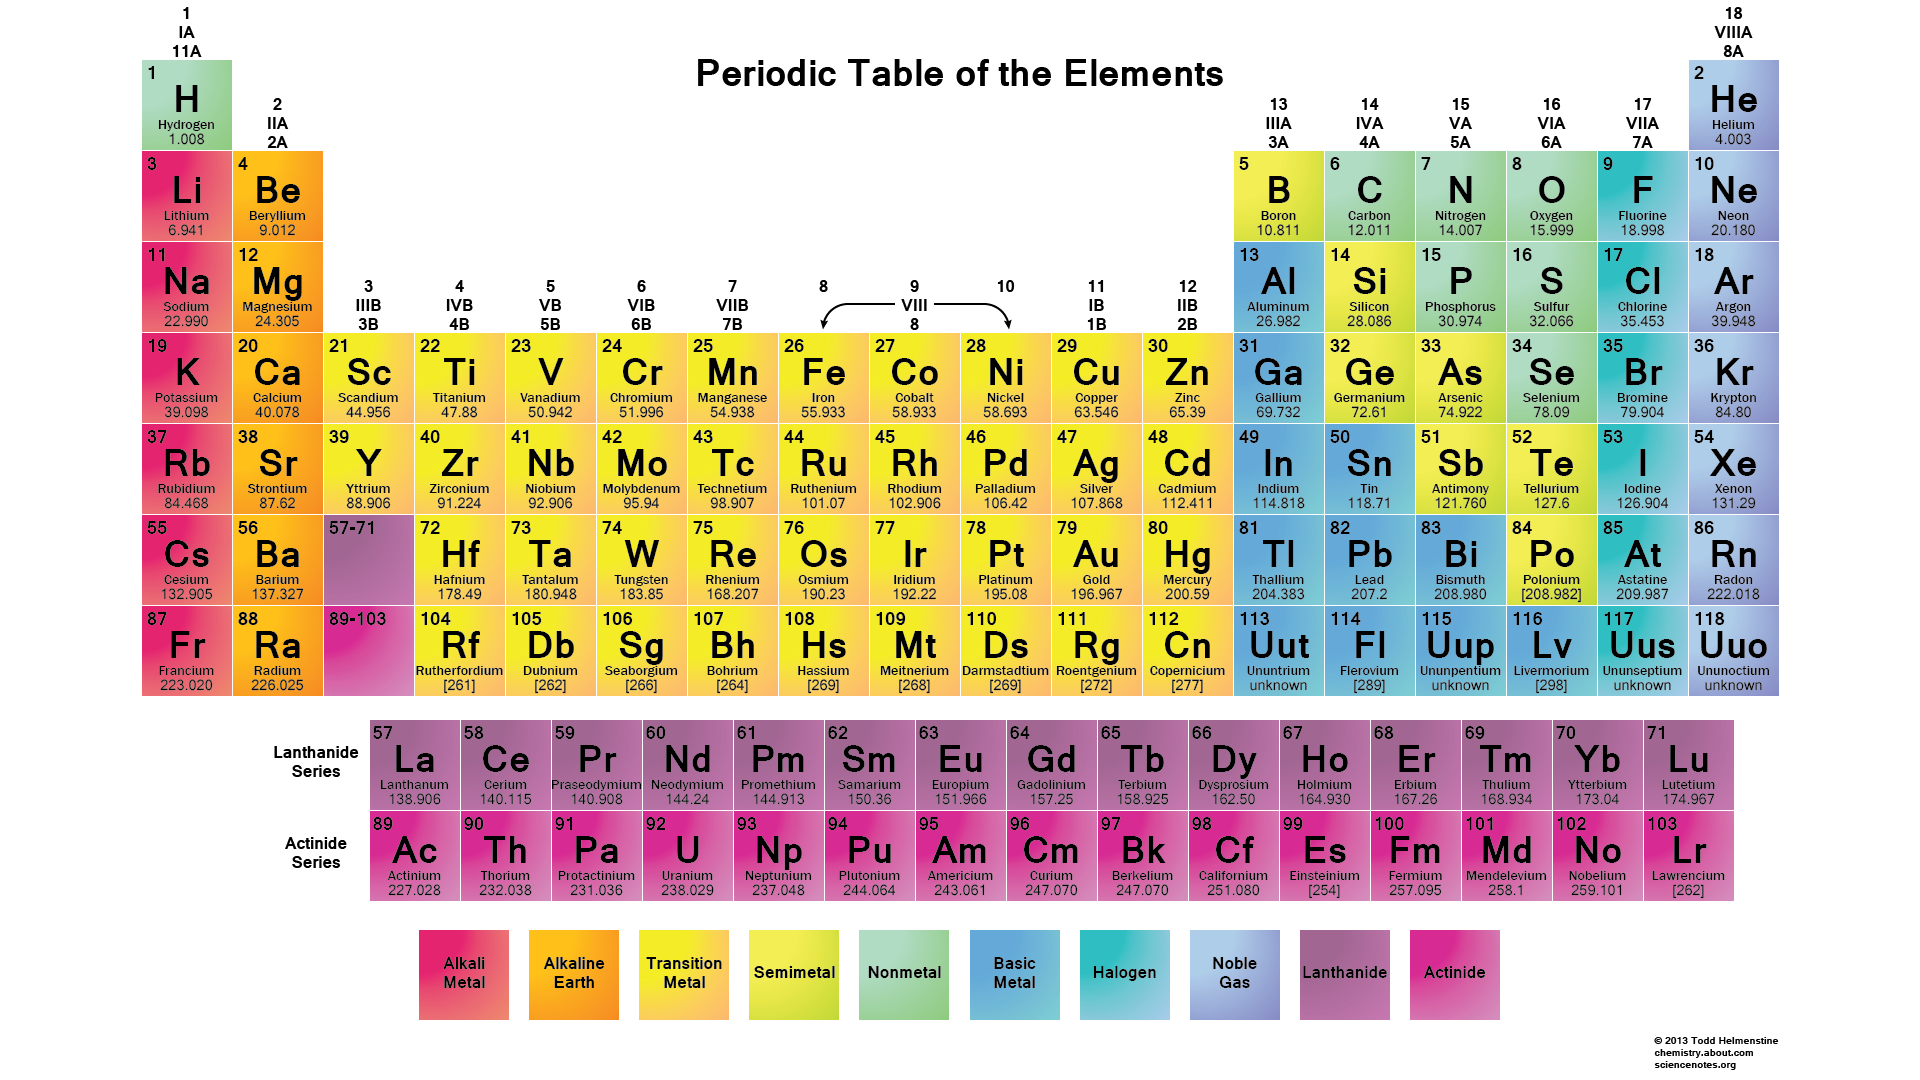 Printable periodic tables pdf periodic table periodic table this color periodic table wallpaper contains each elements atomic number symbol name and atomic mass with vividly colored tiles for the element groups urtaz Images